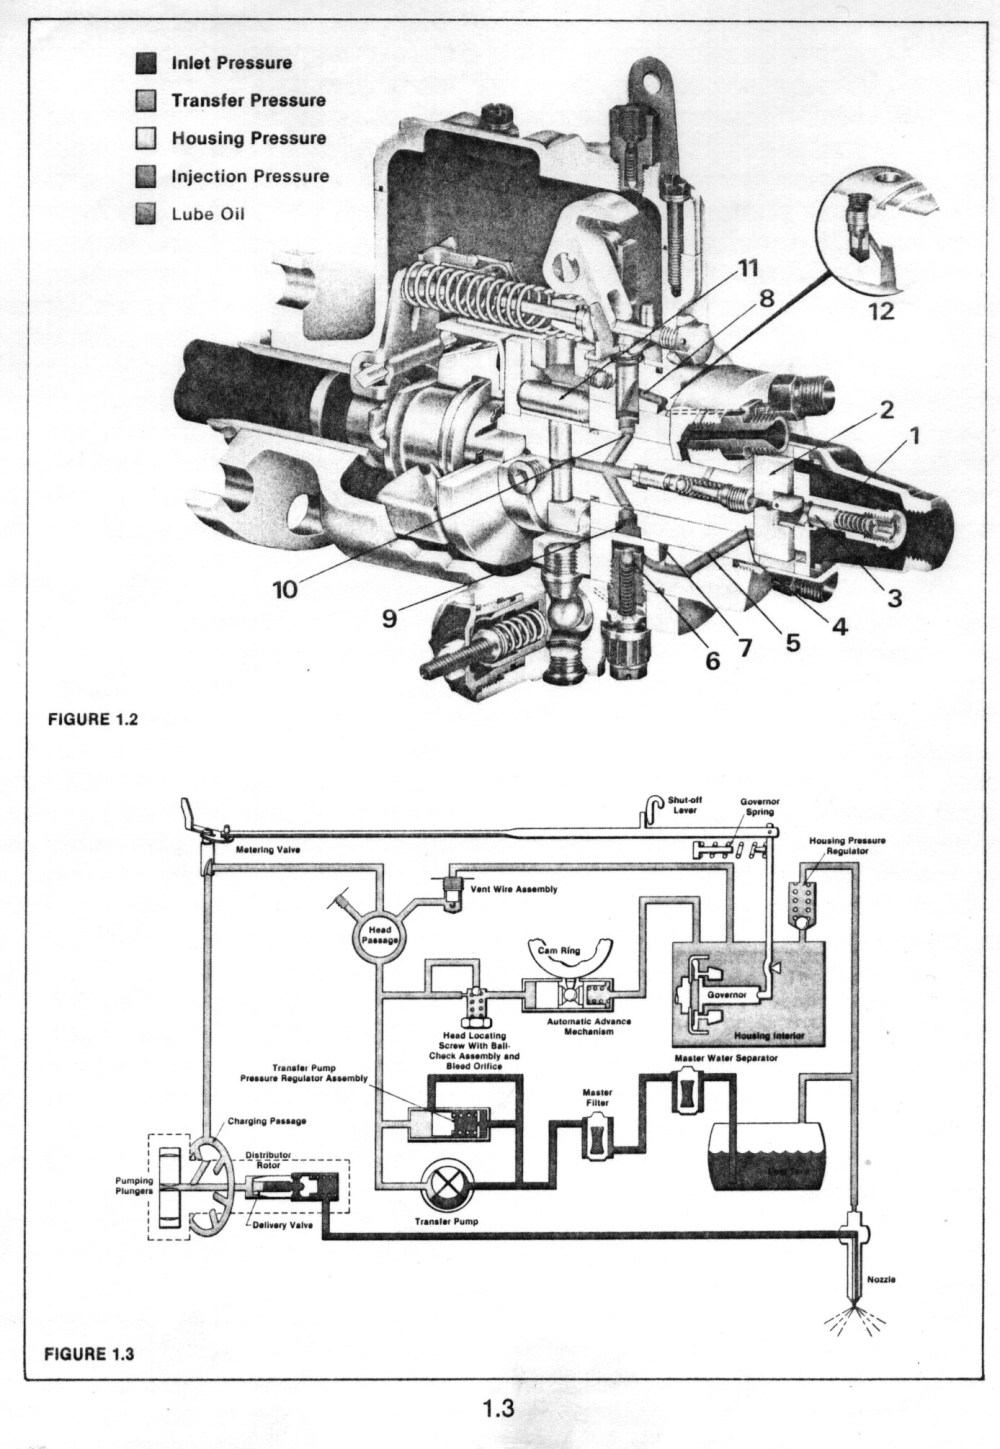 medium resolution of ford simms diesel injector pump diagram imageresizertool com lucas cav injection pump diagram lucas cav injection